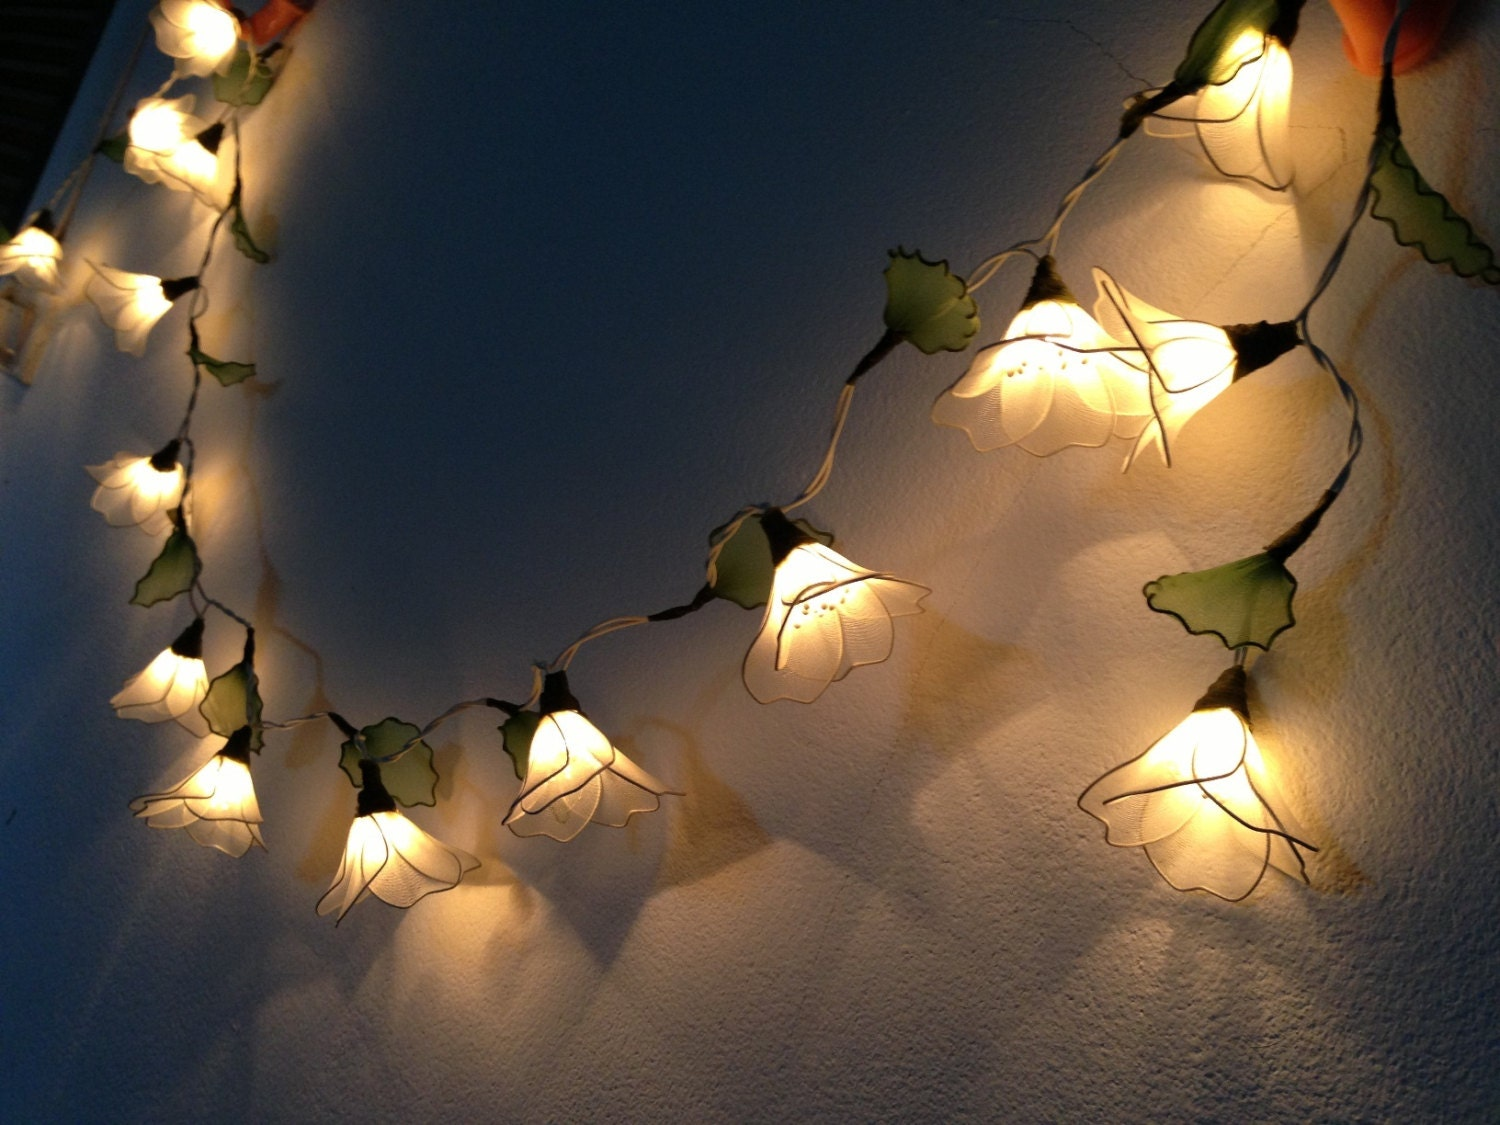 Custom Party String Lights : 20 Bulbs White Himalayas flower with leaf string lights for